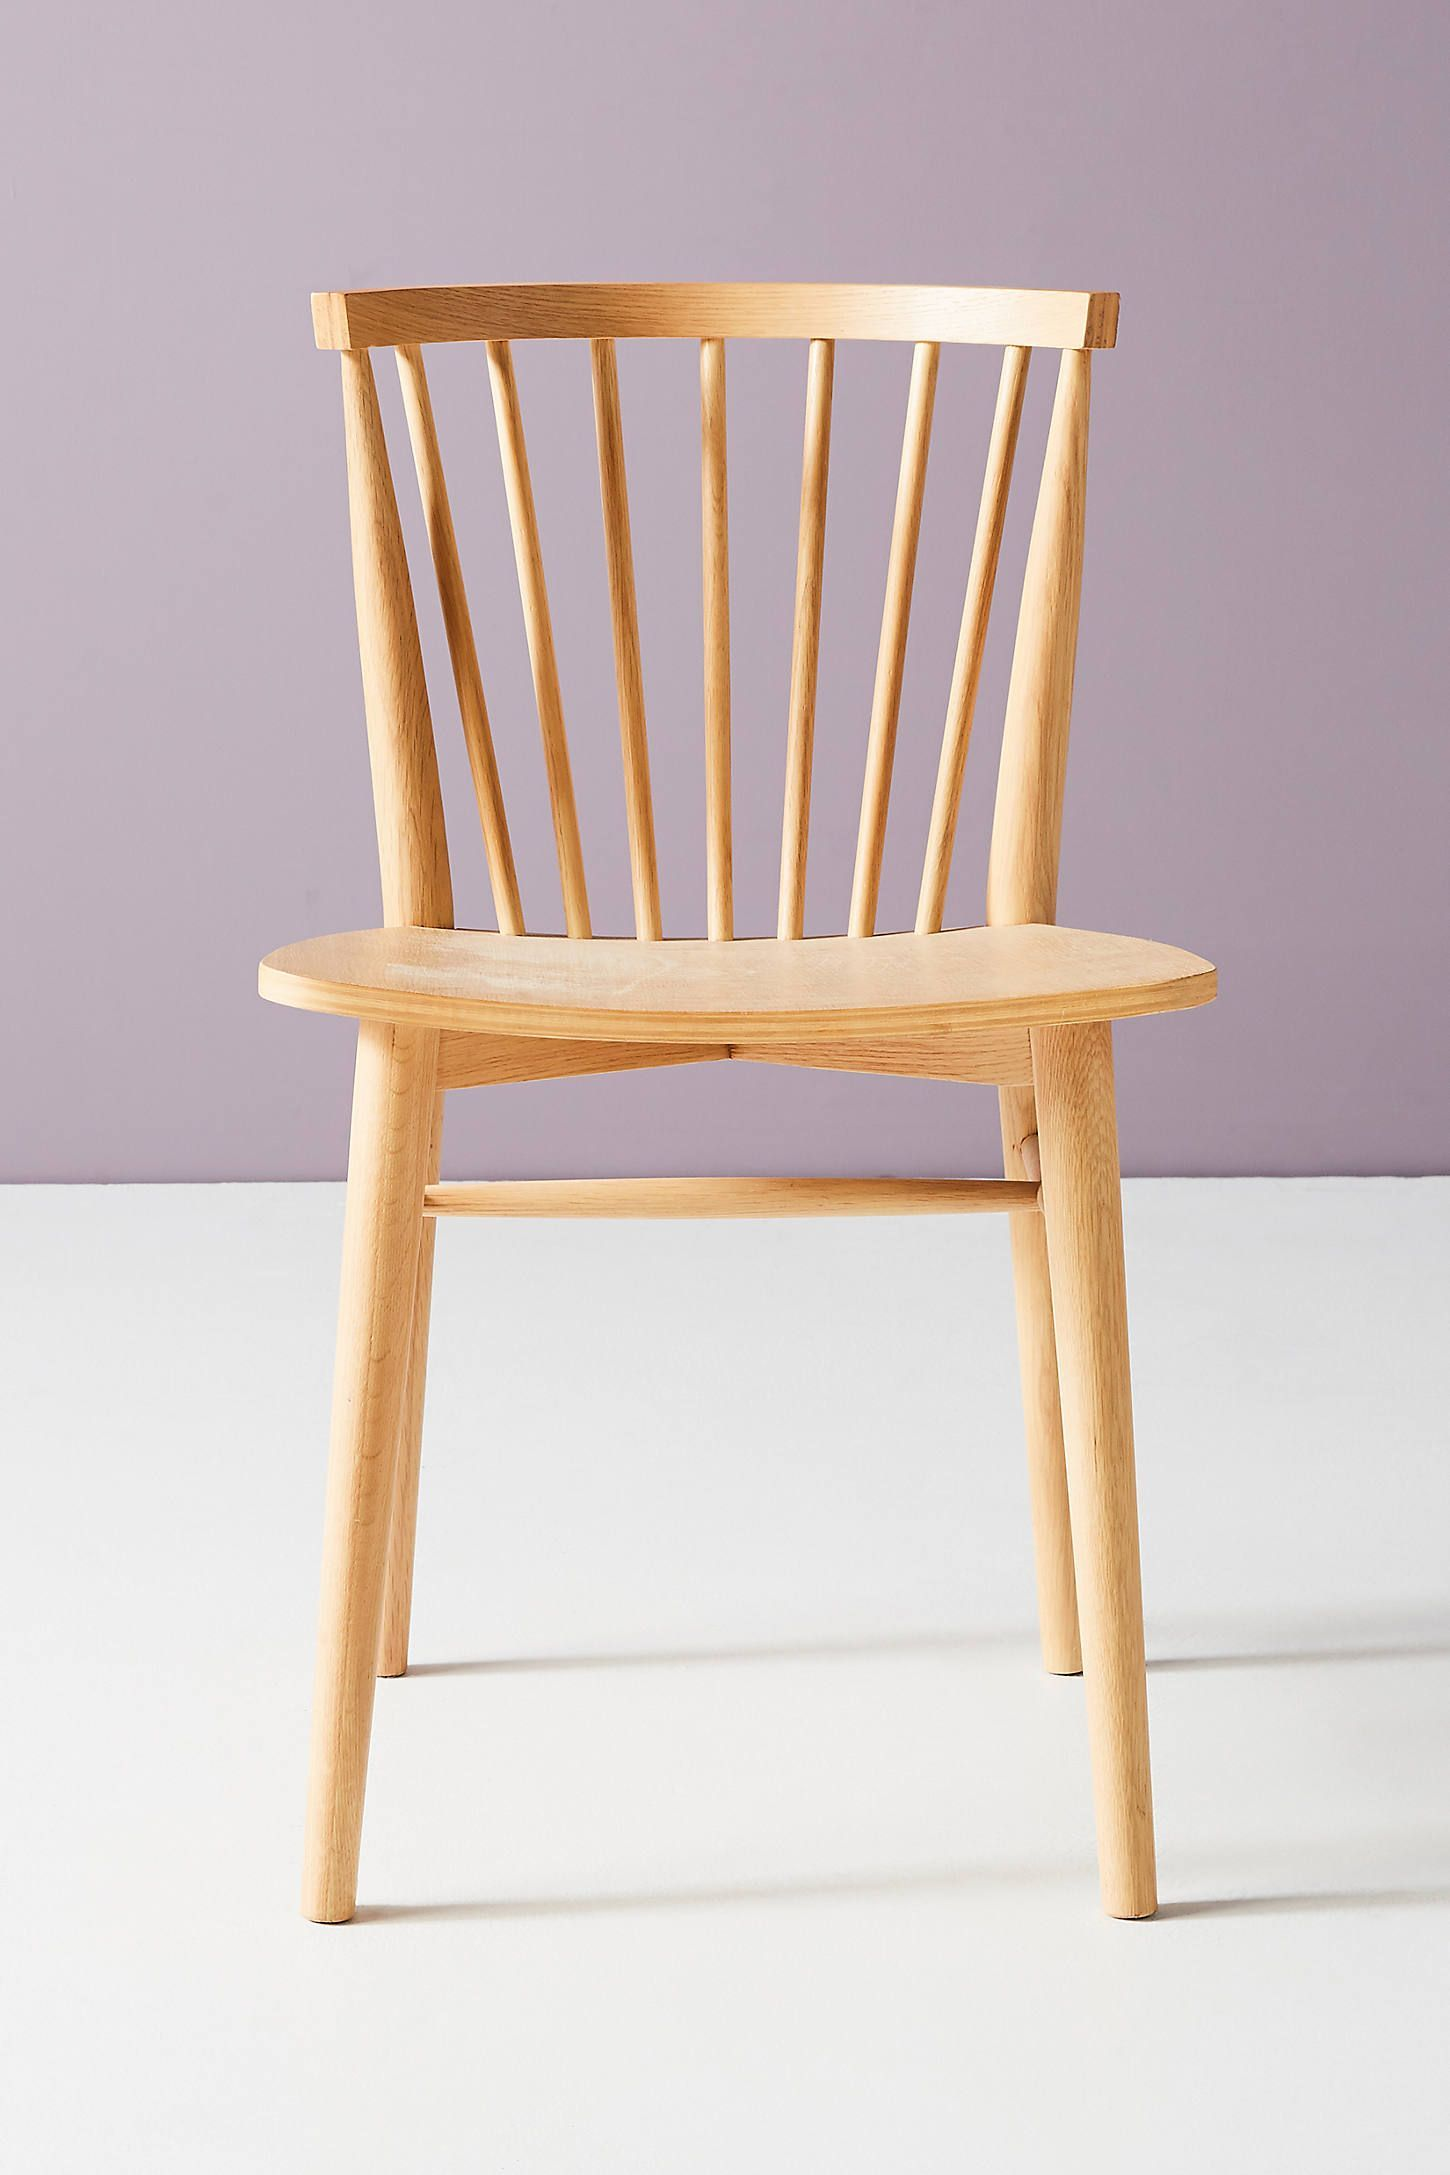 Remnick Chair Chair Retro Dining Chairs Dining Chairs Diy